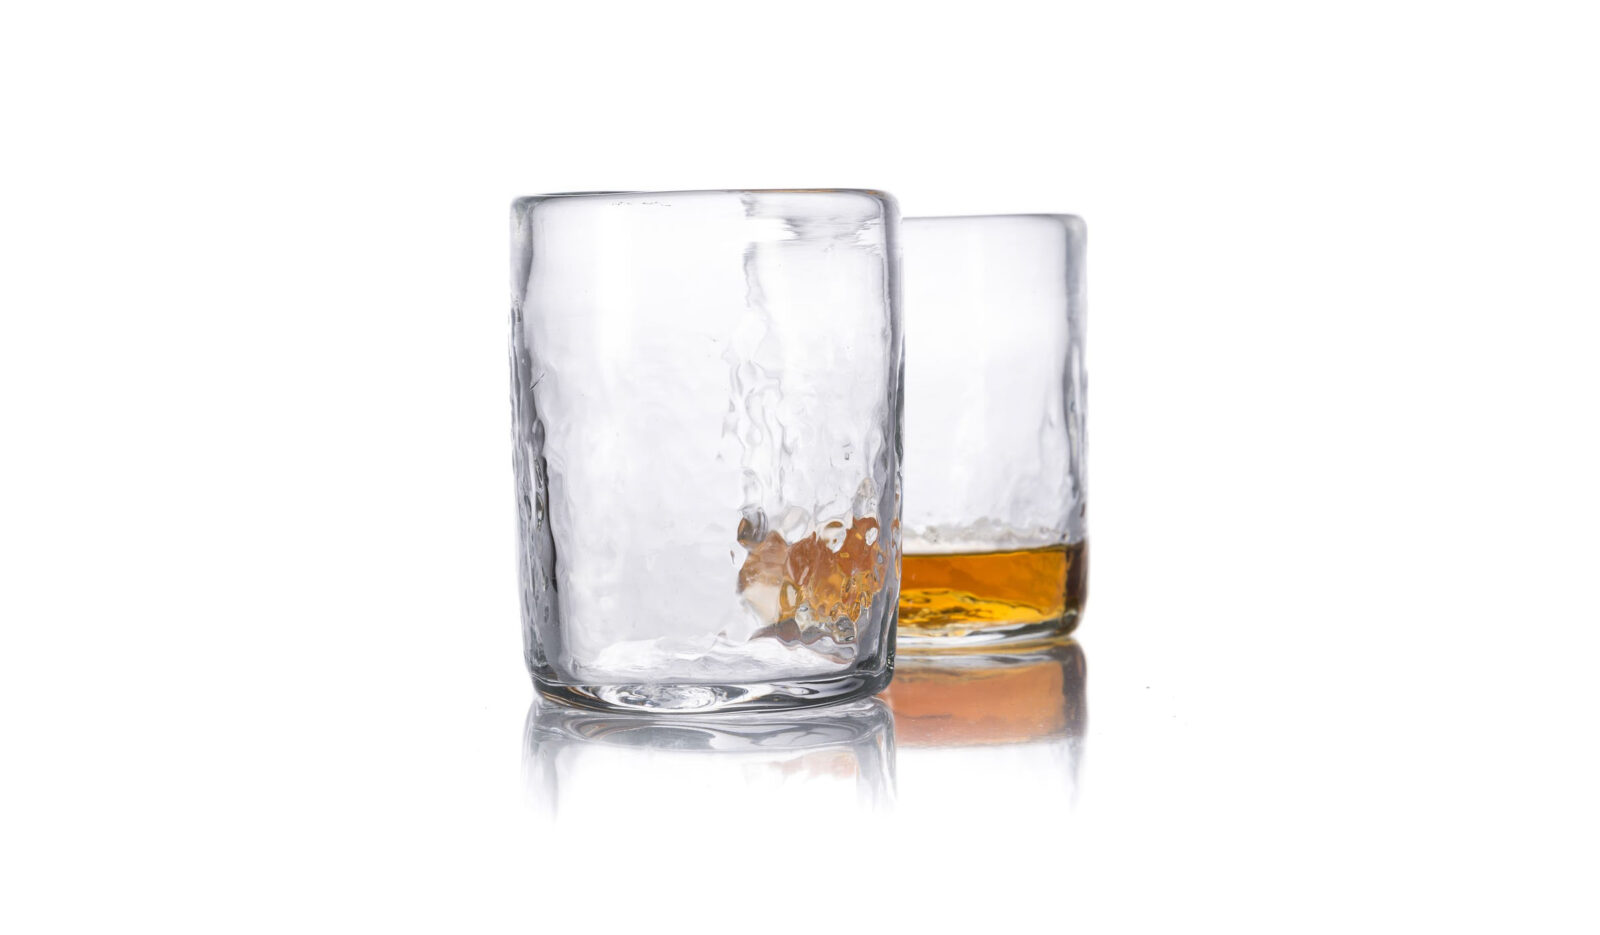 Natural Glass Whiskey Tumblers 1 1600x935 - Natural Glass Whiskey Tumblers